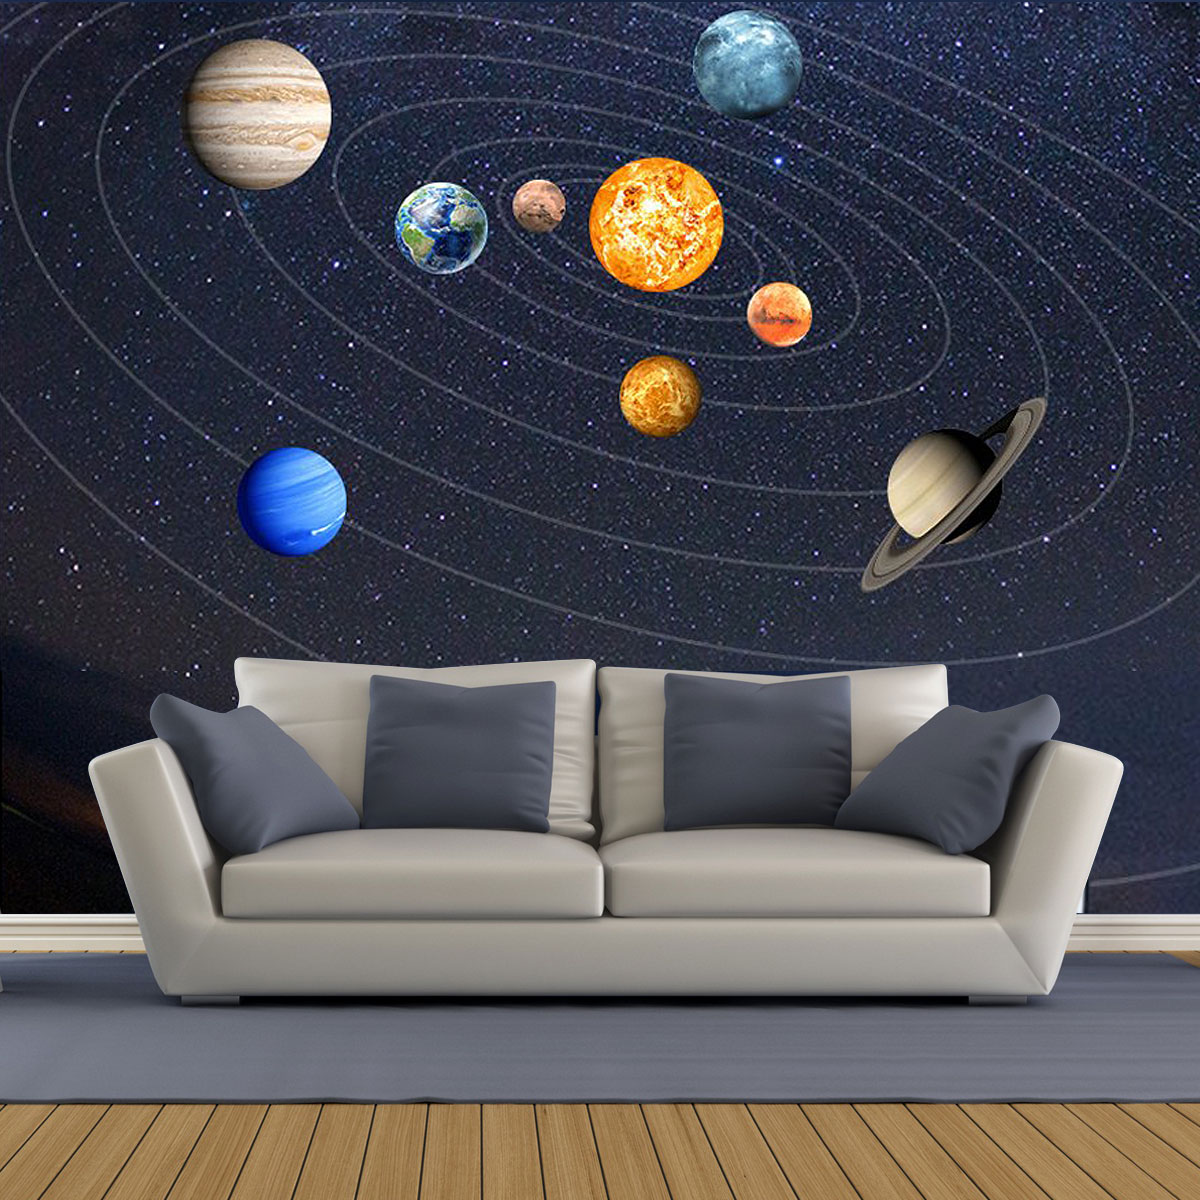 Home Furniture Diy Galaxy Planet Space Solar System Wall